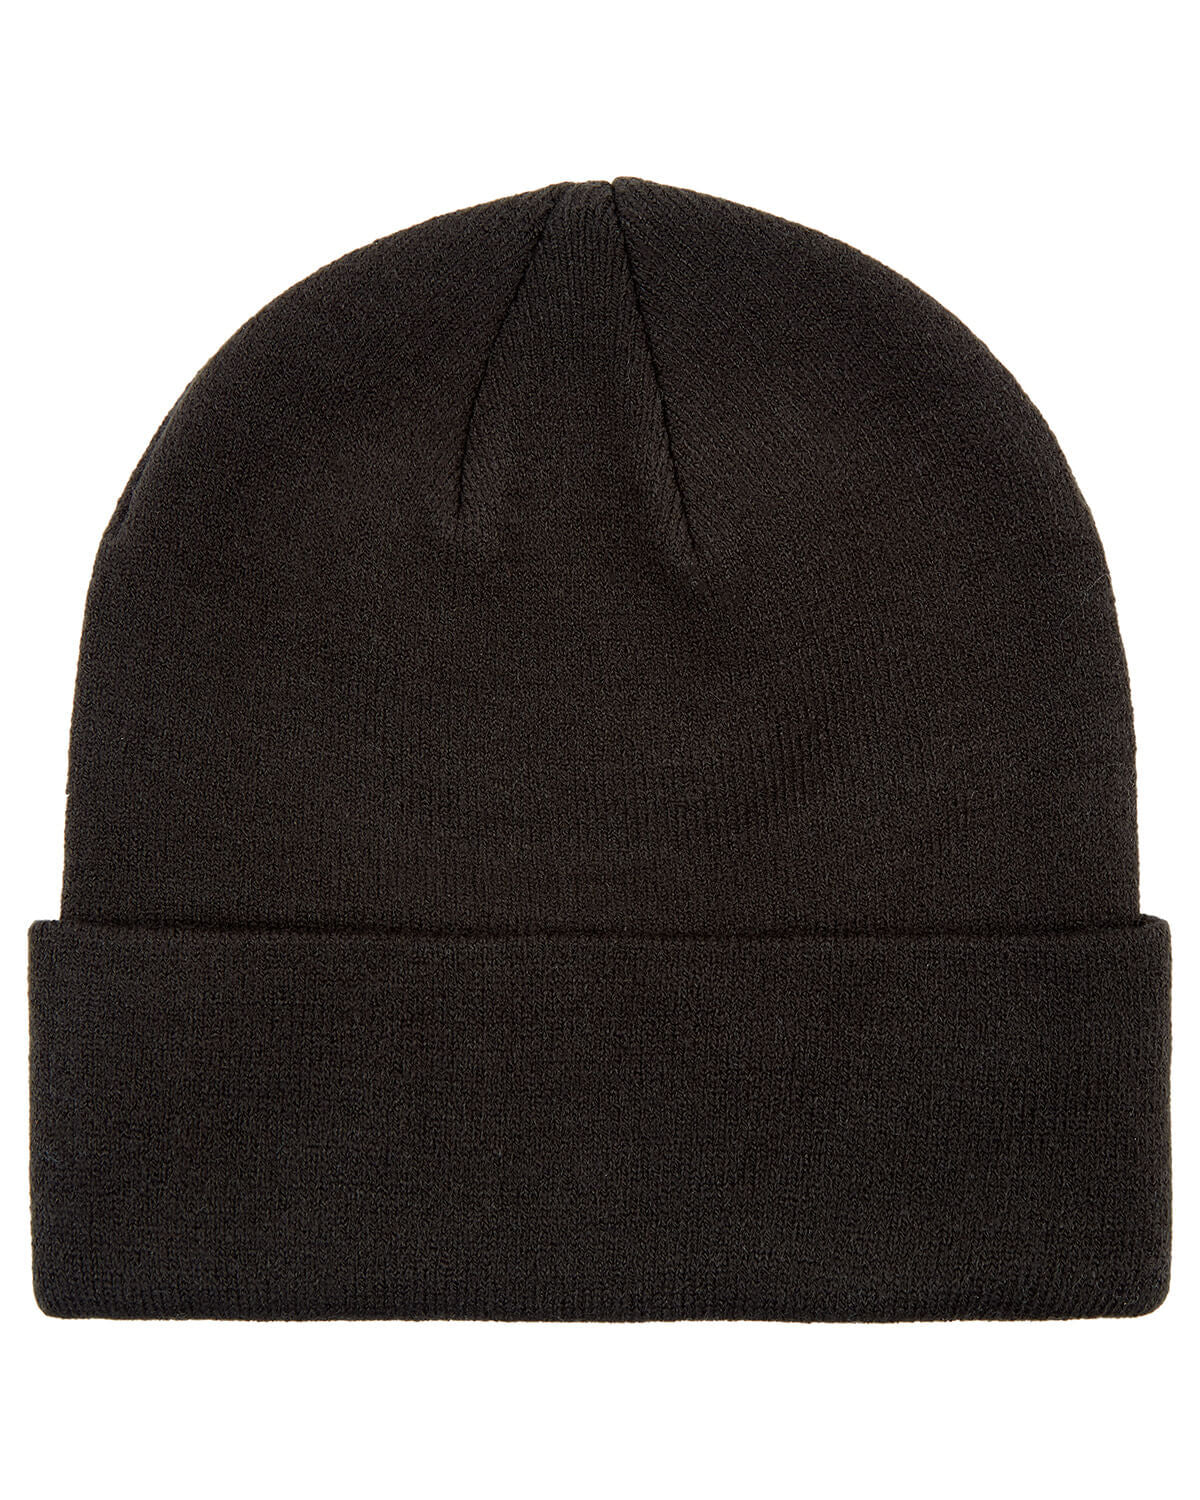 LYLE & SCOTT Beanie - BLACK